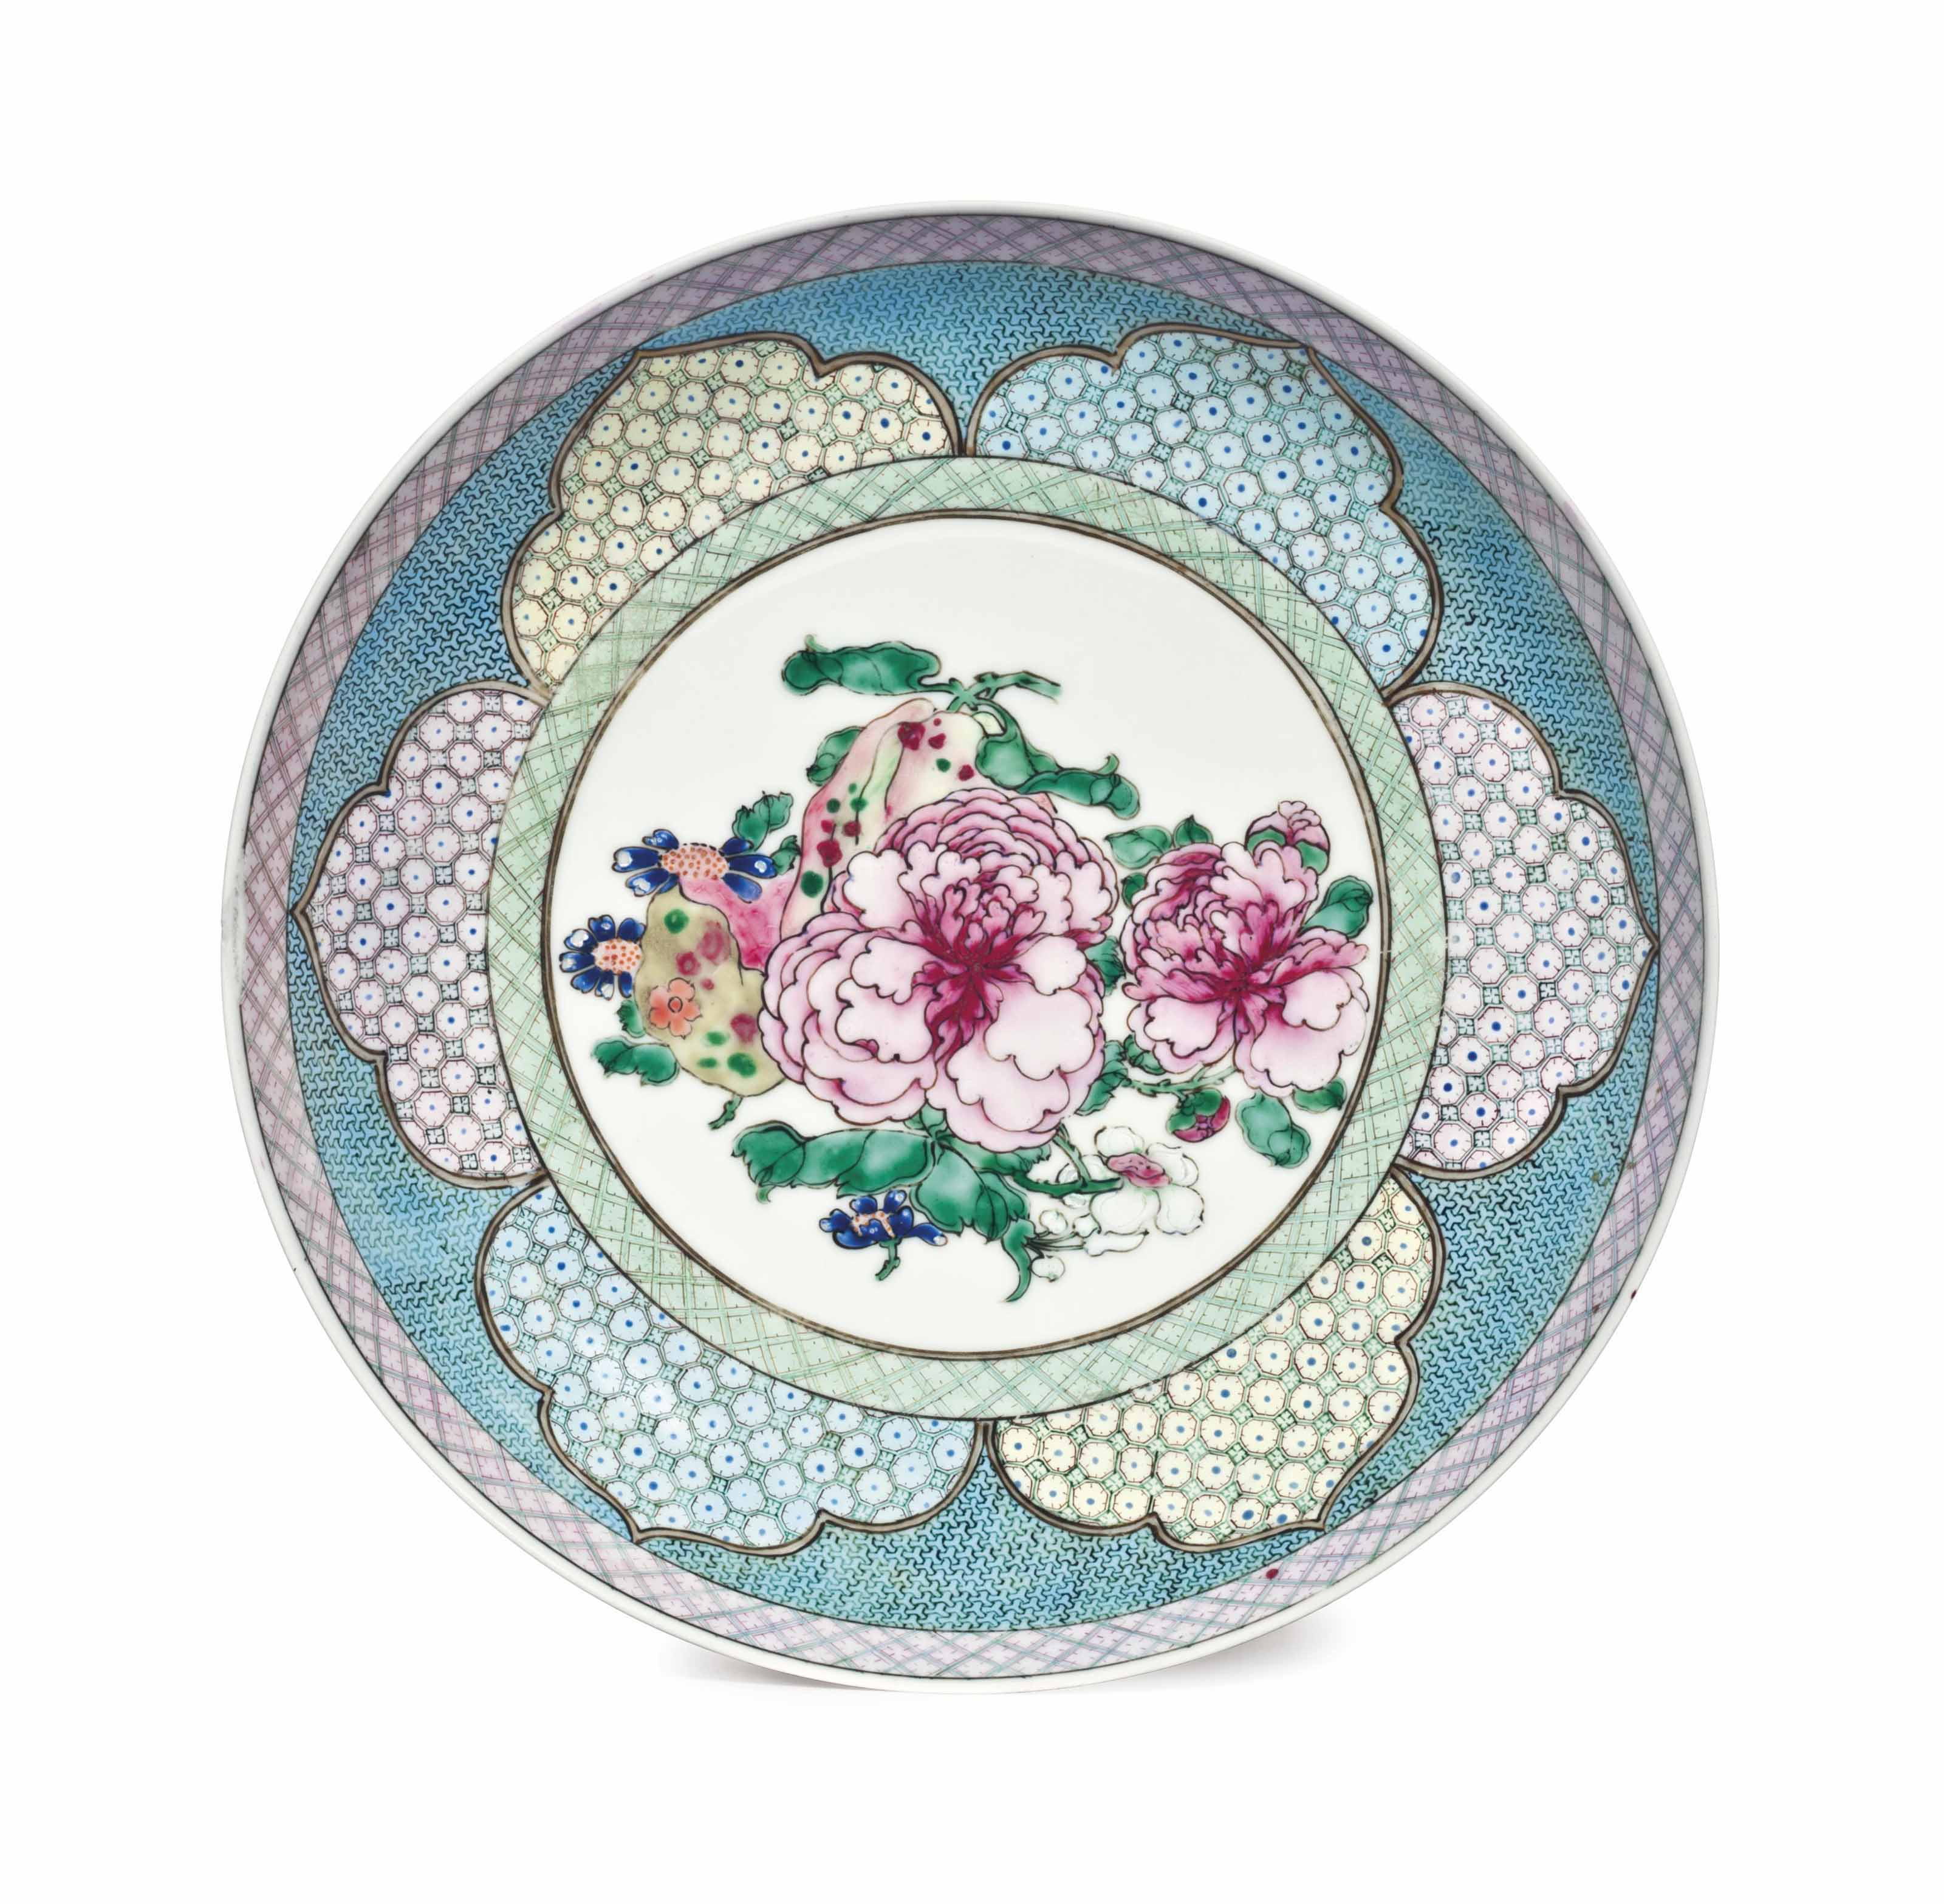 A FINELY ENAMELED FAMILLE ROSE